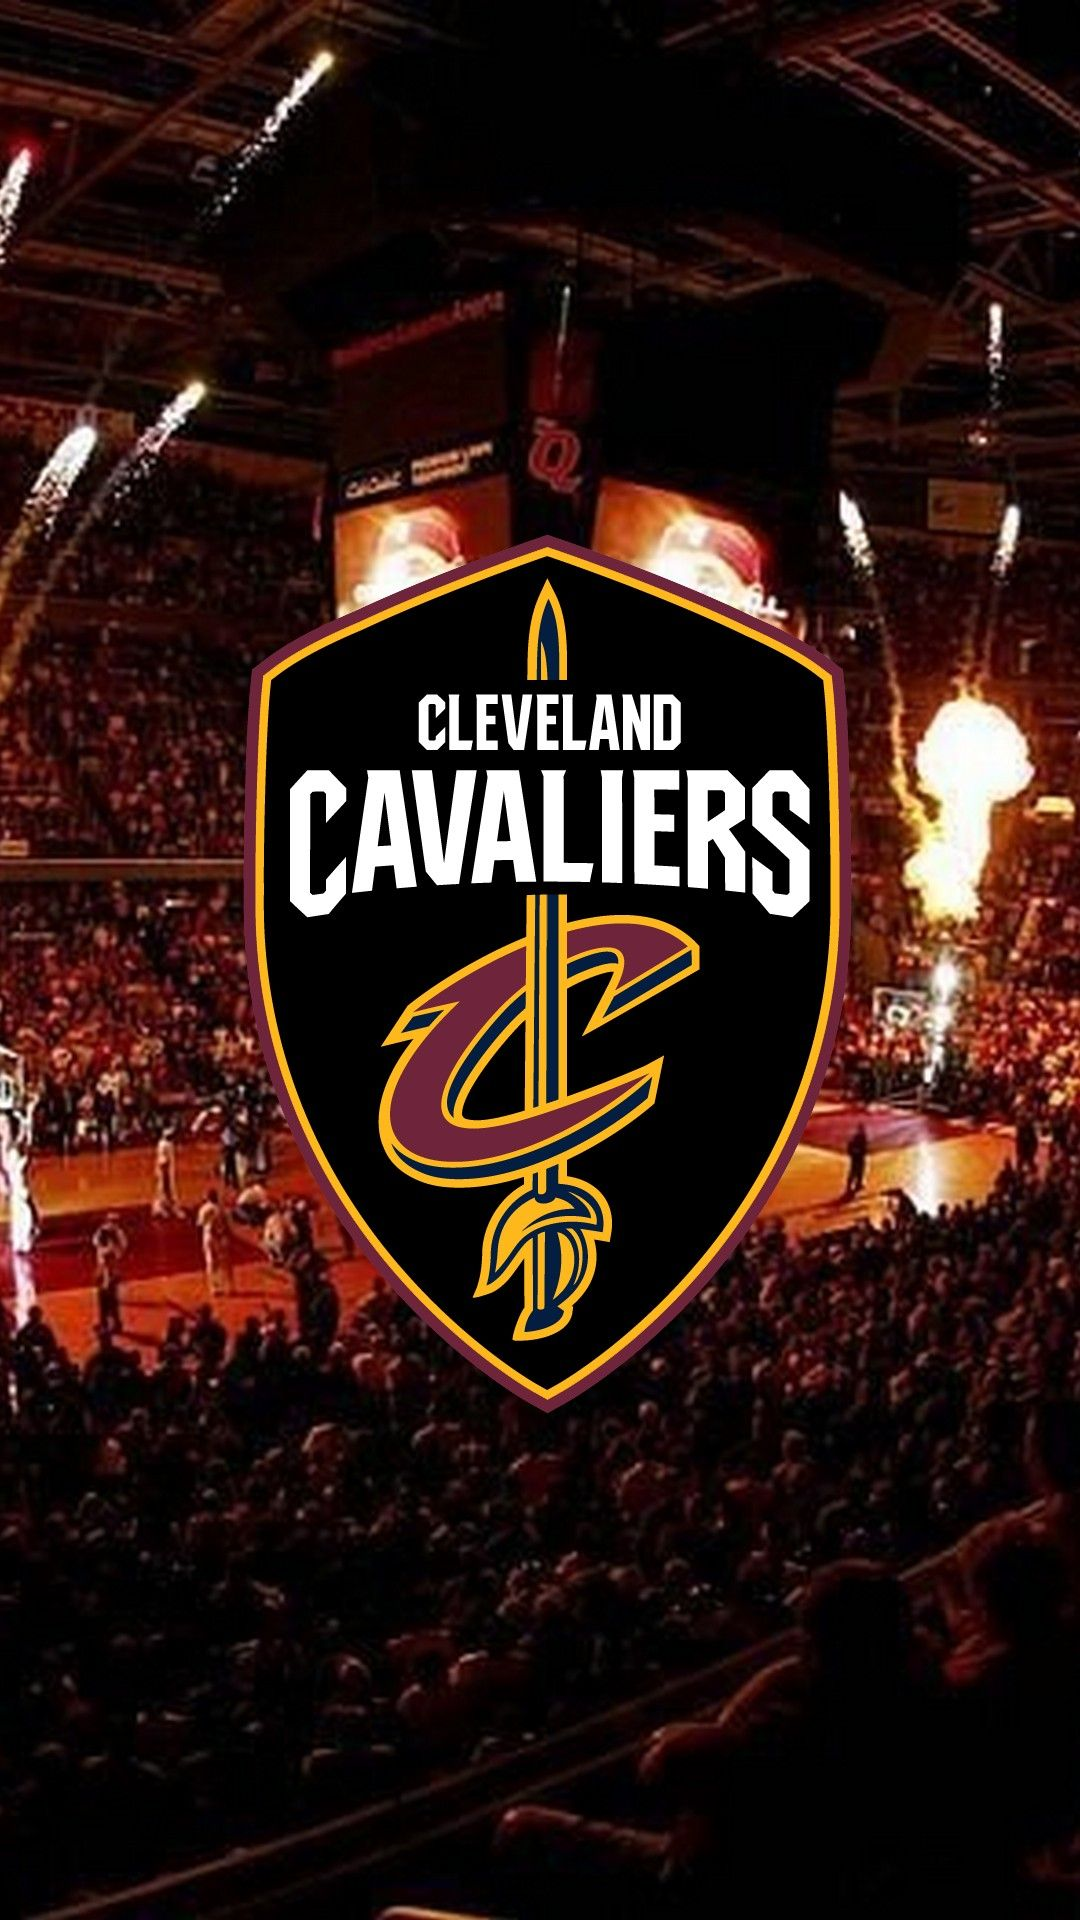 Wallpaper Mobile Cleveland Cavaliers 2021 Basketball Wallpaper Cavaliers Wallpaper Cleveland Cavaliers Basketball Wallpaper